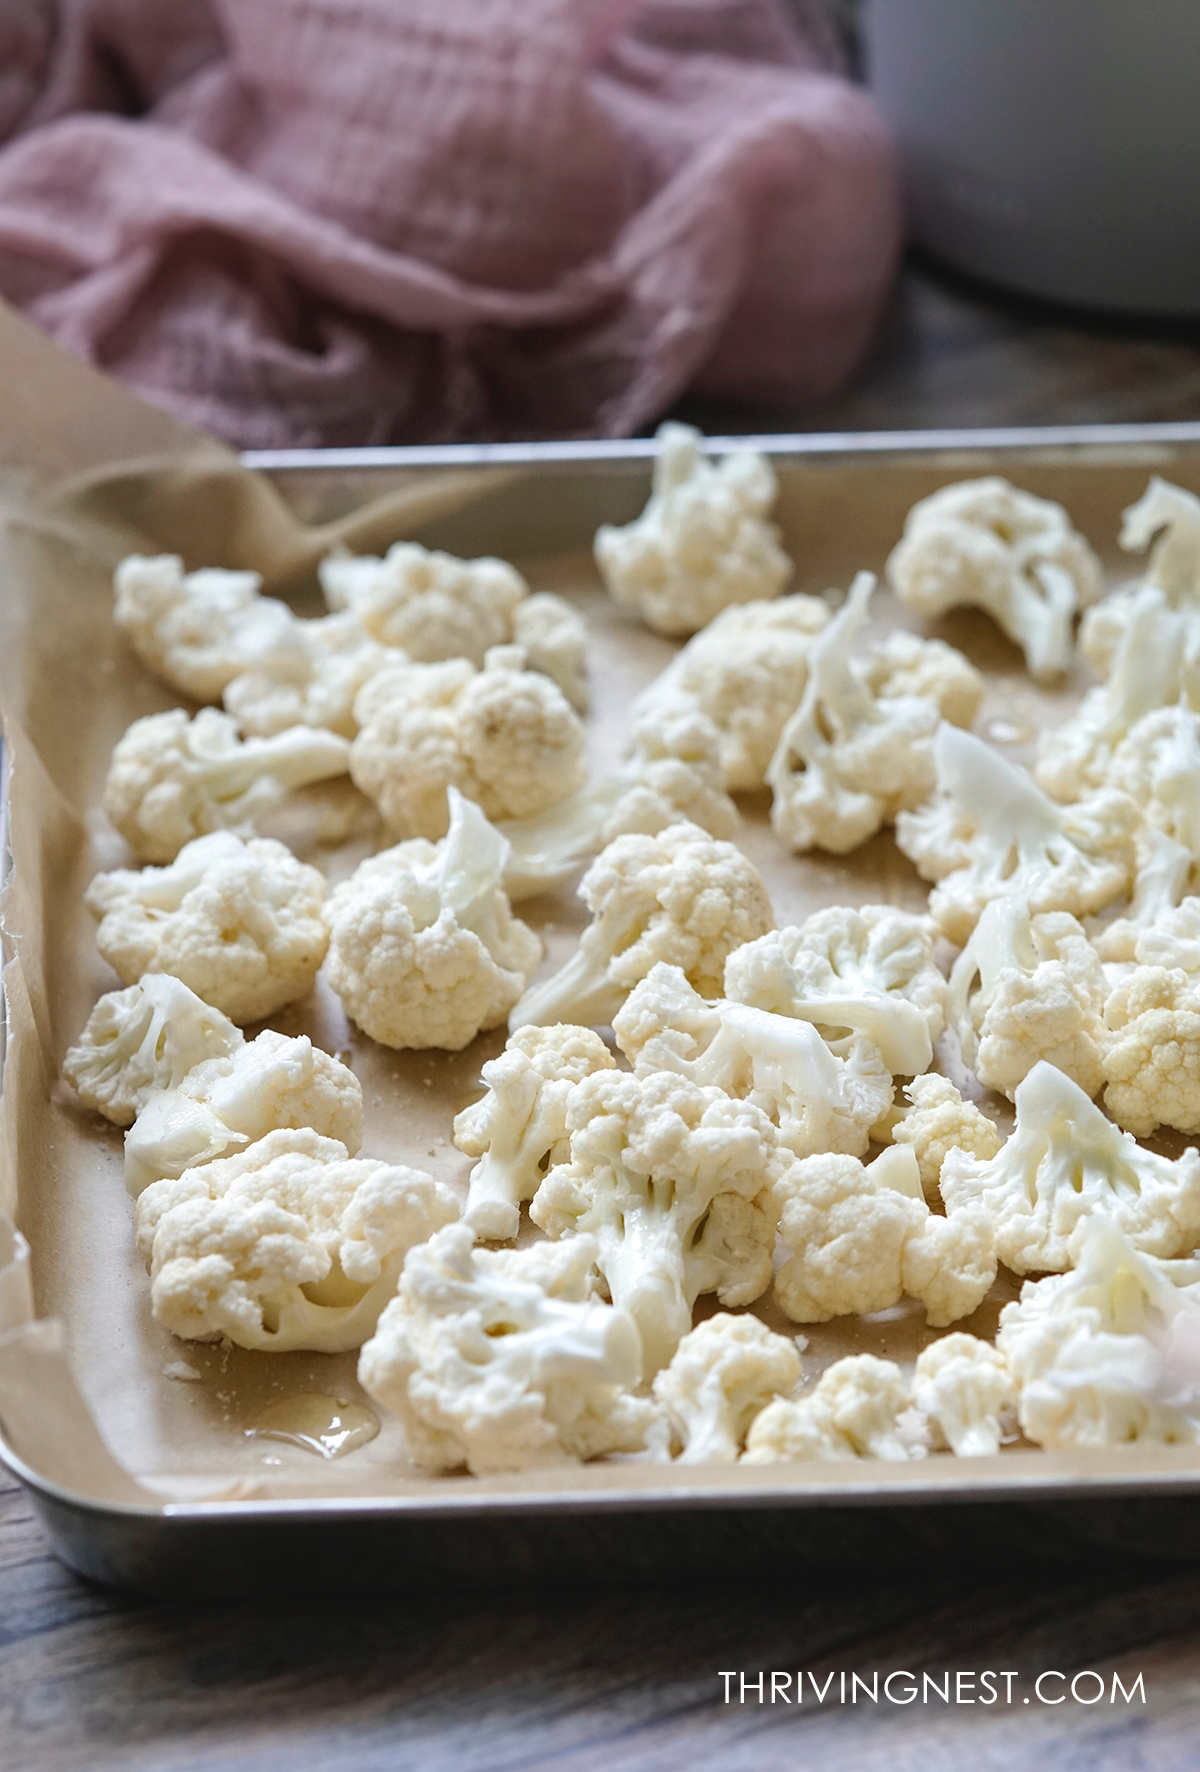 Prepared cut cauliflower florets placed in a baking sheet ready to be baked.